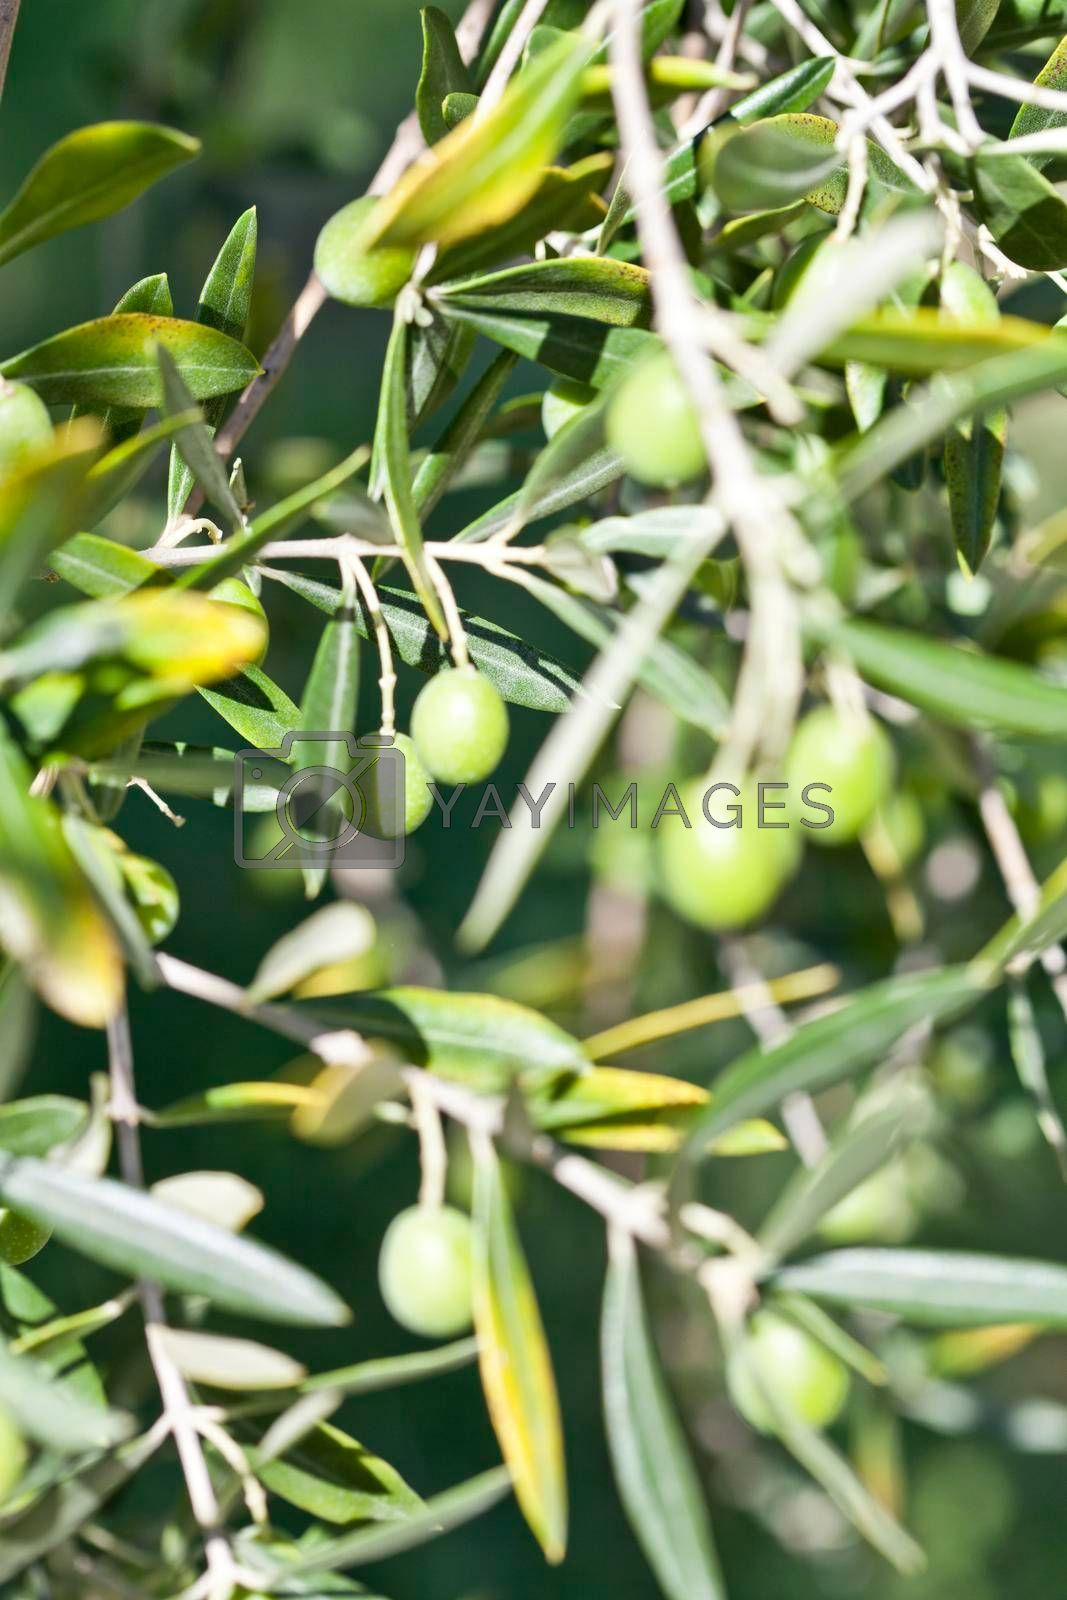 Olives on olive tree in autumn. Season and harvest nature image. Italy.